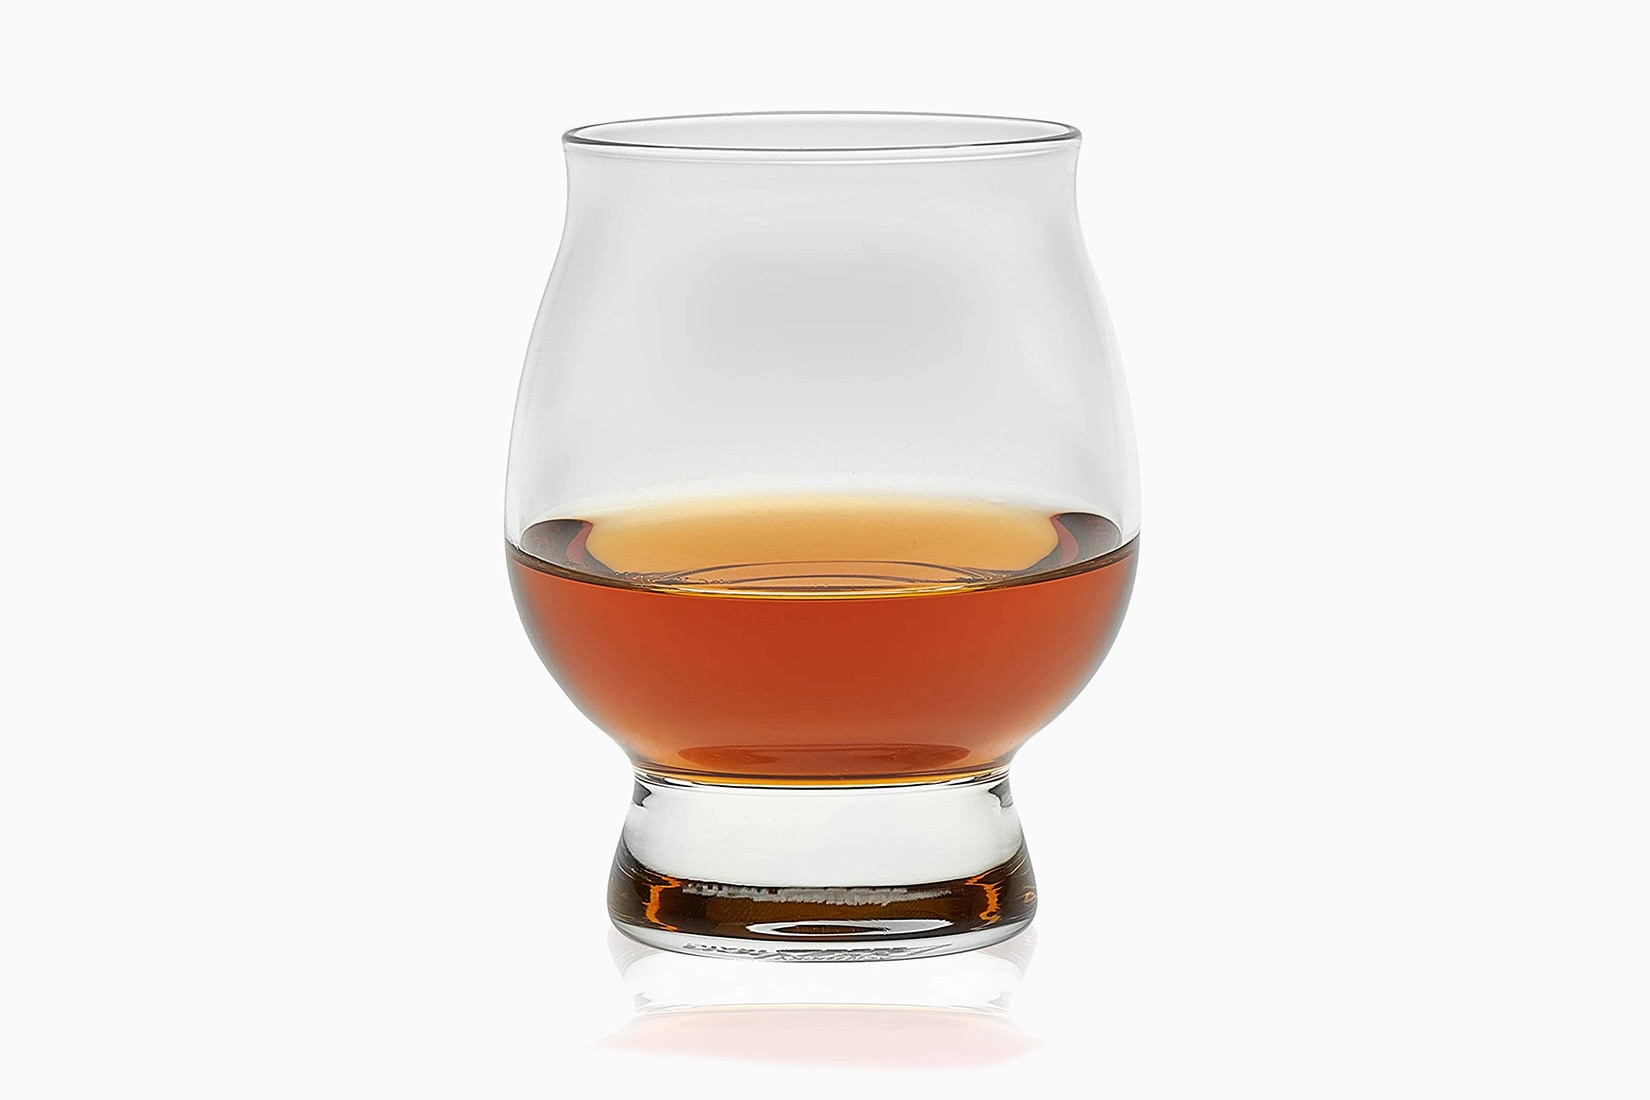 best whisky glass libbey signature - Luxe Digital